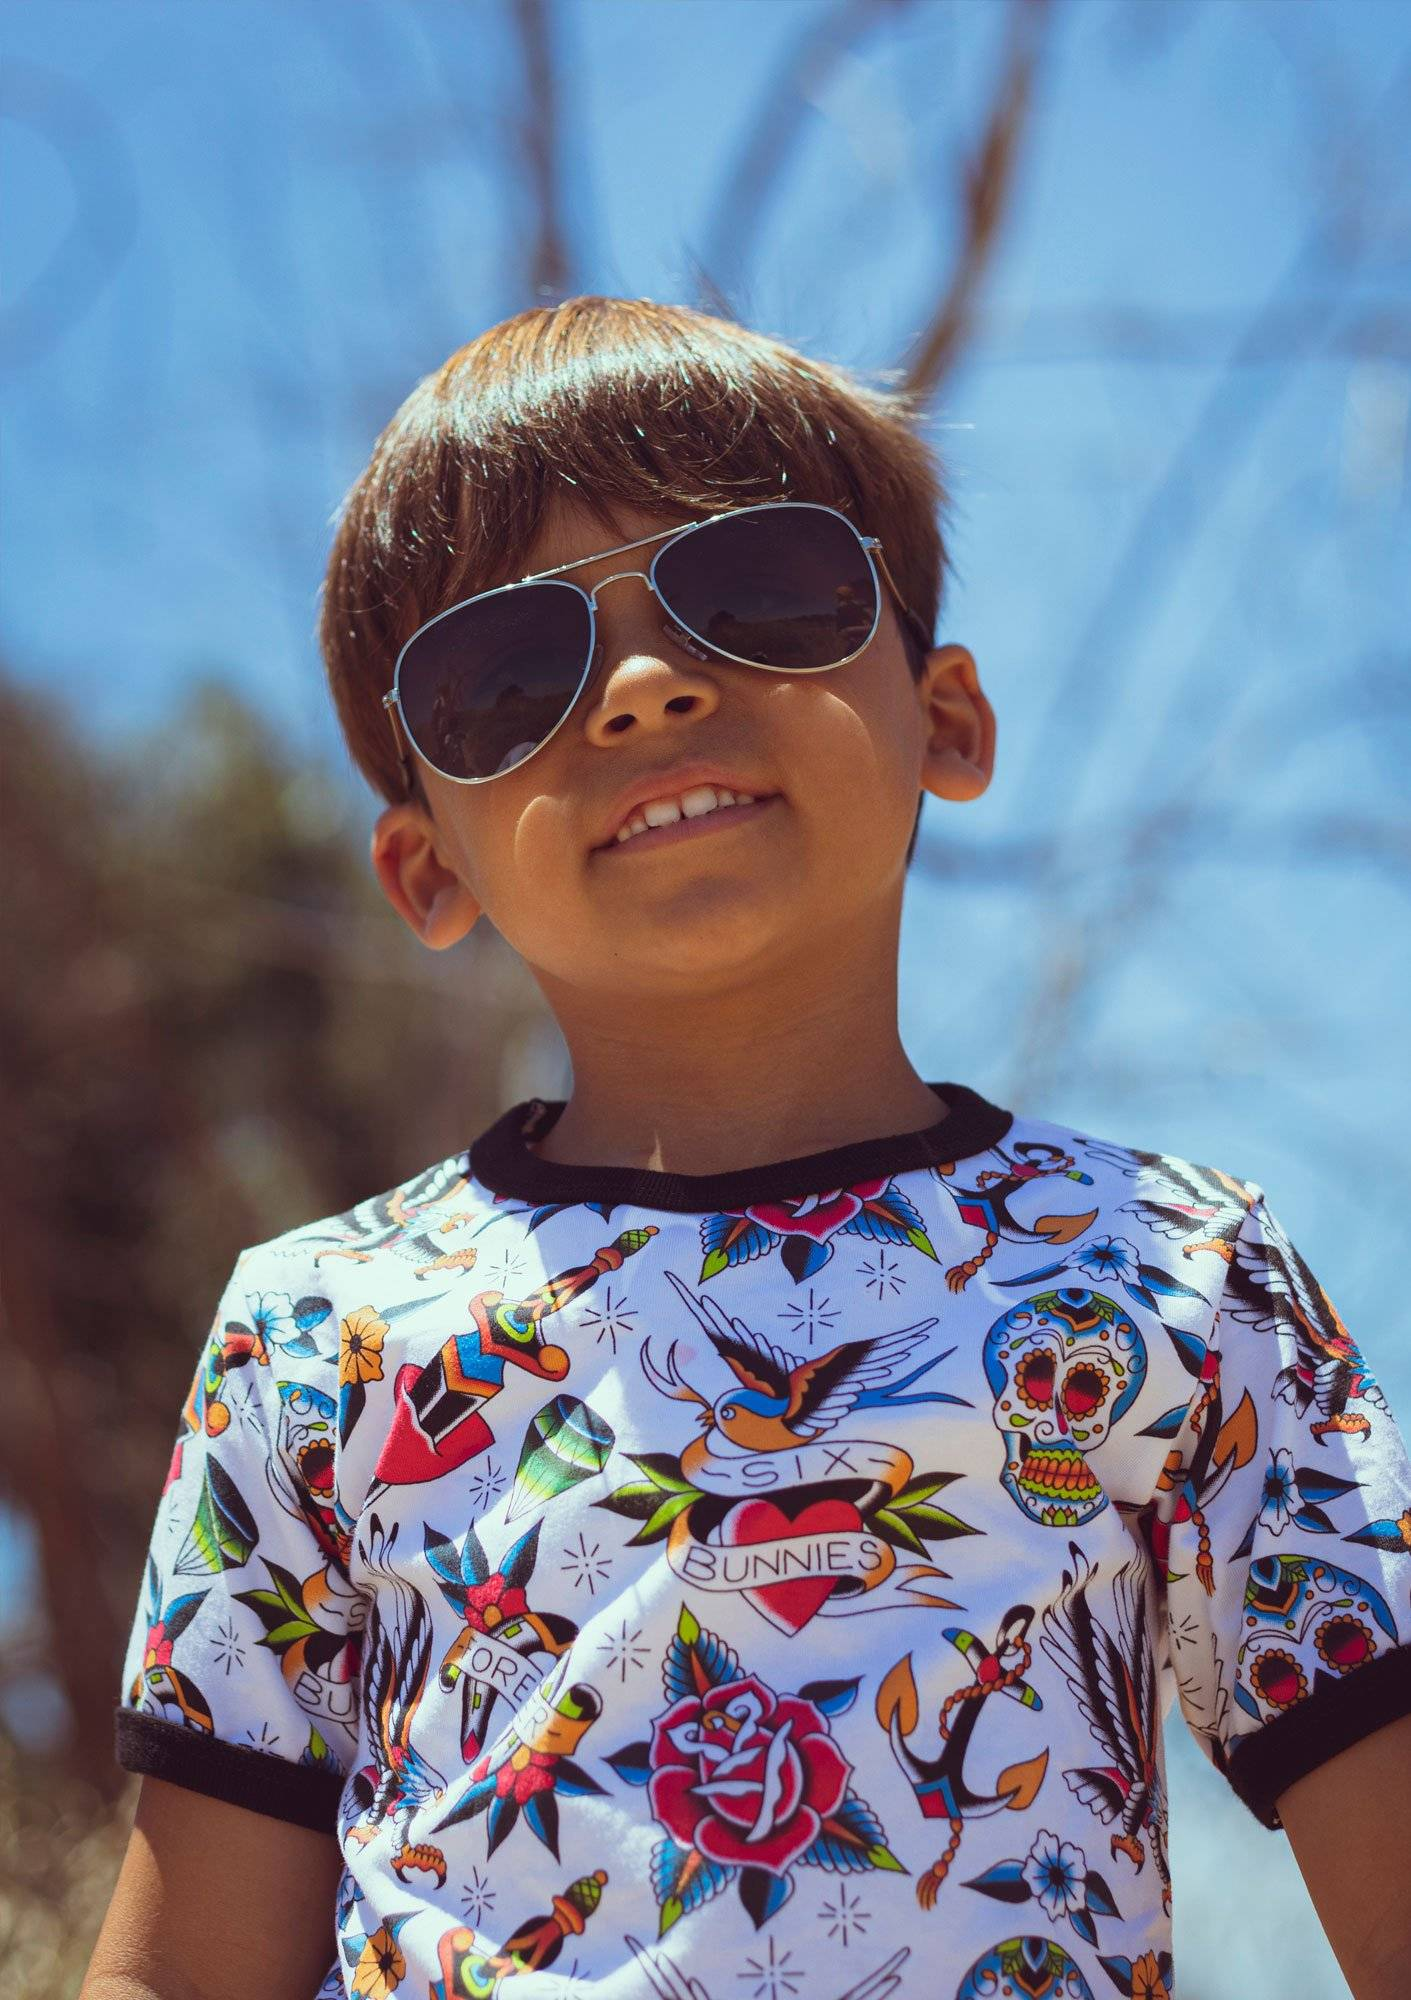 Young boy in sunglasses and graphic tee